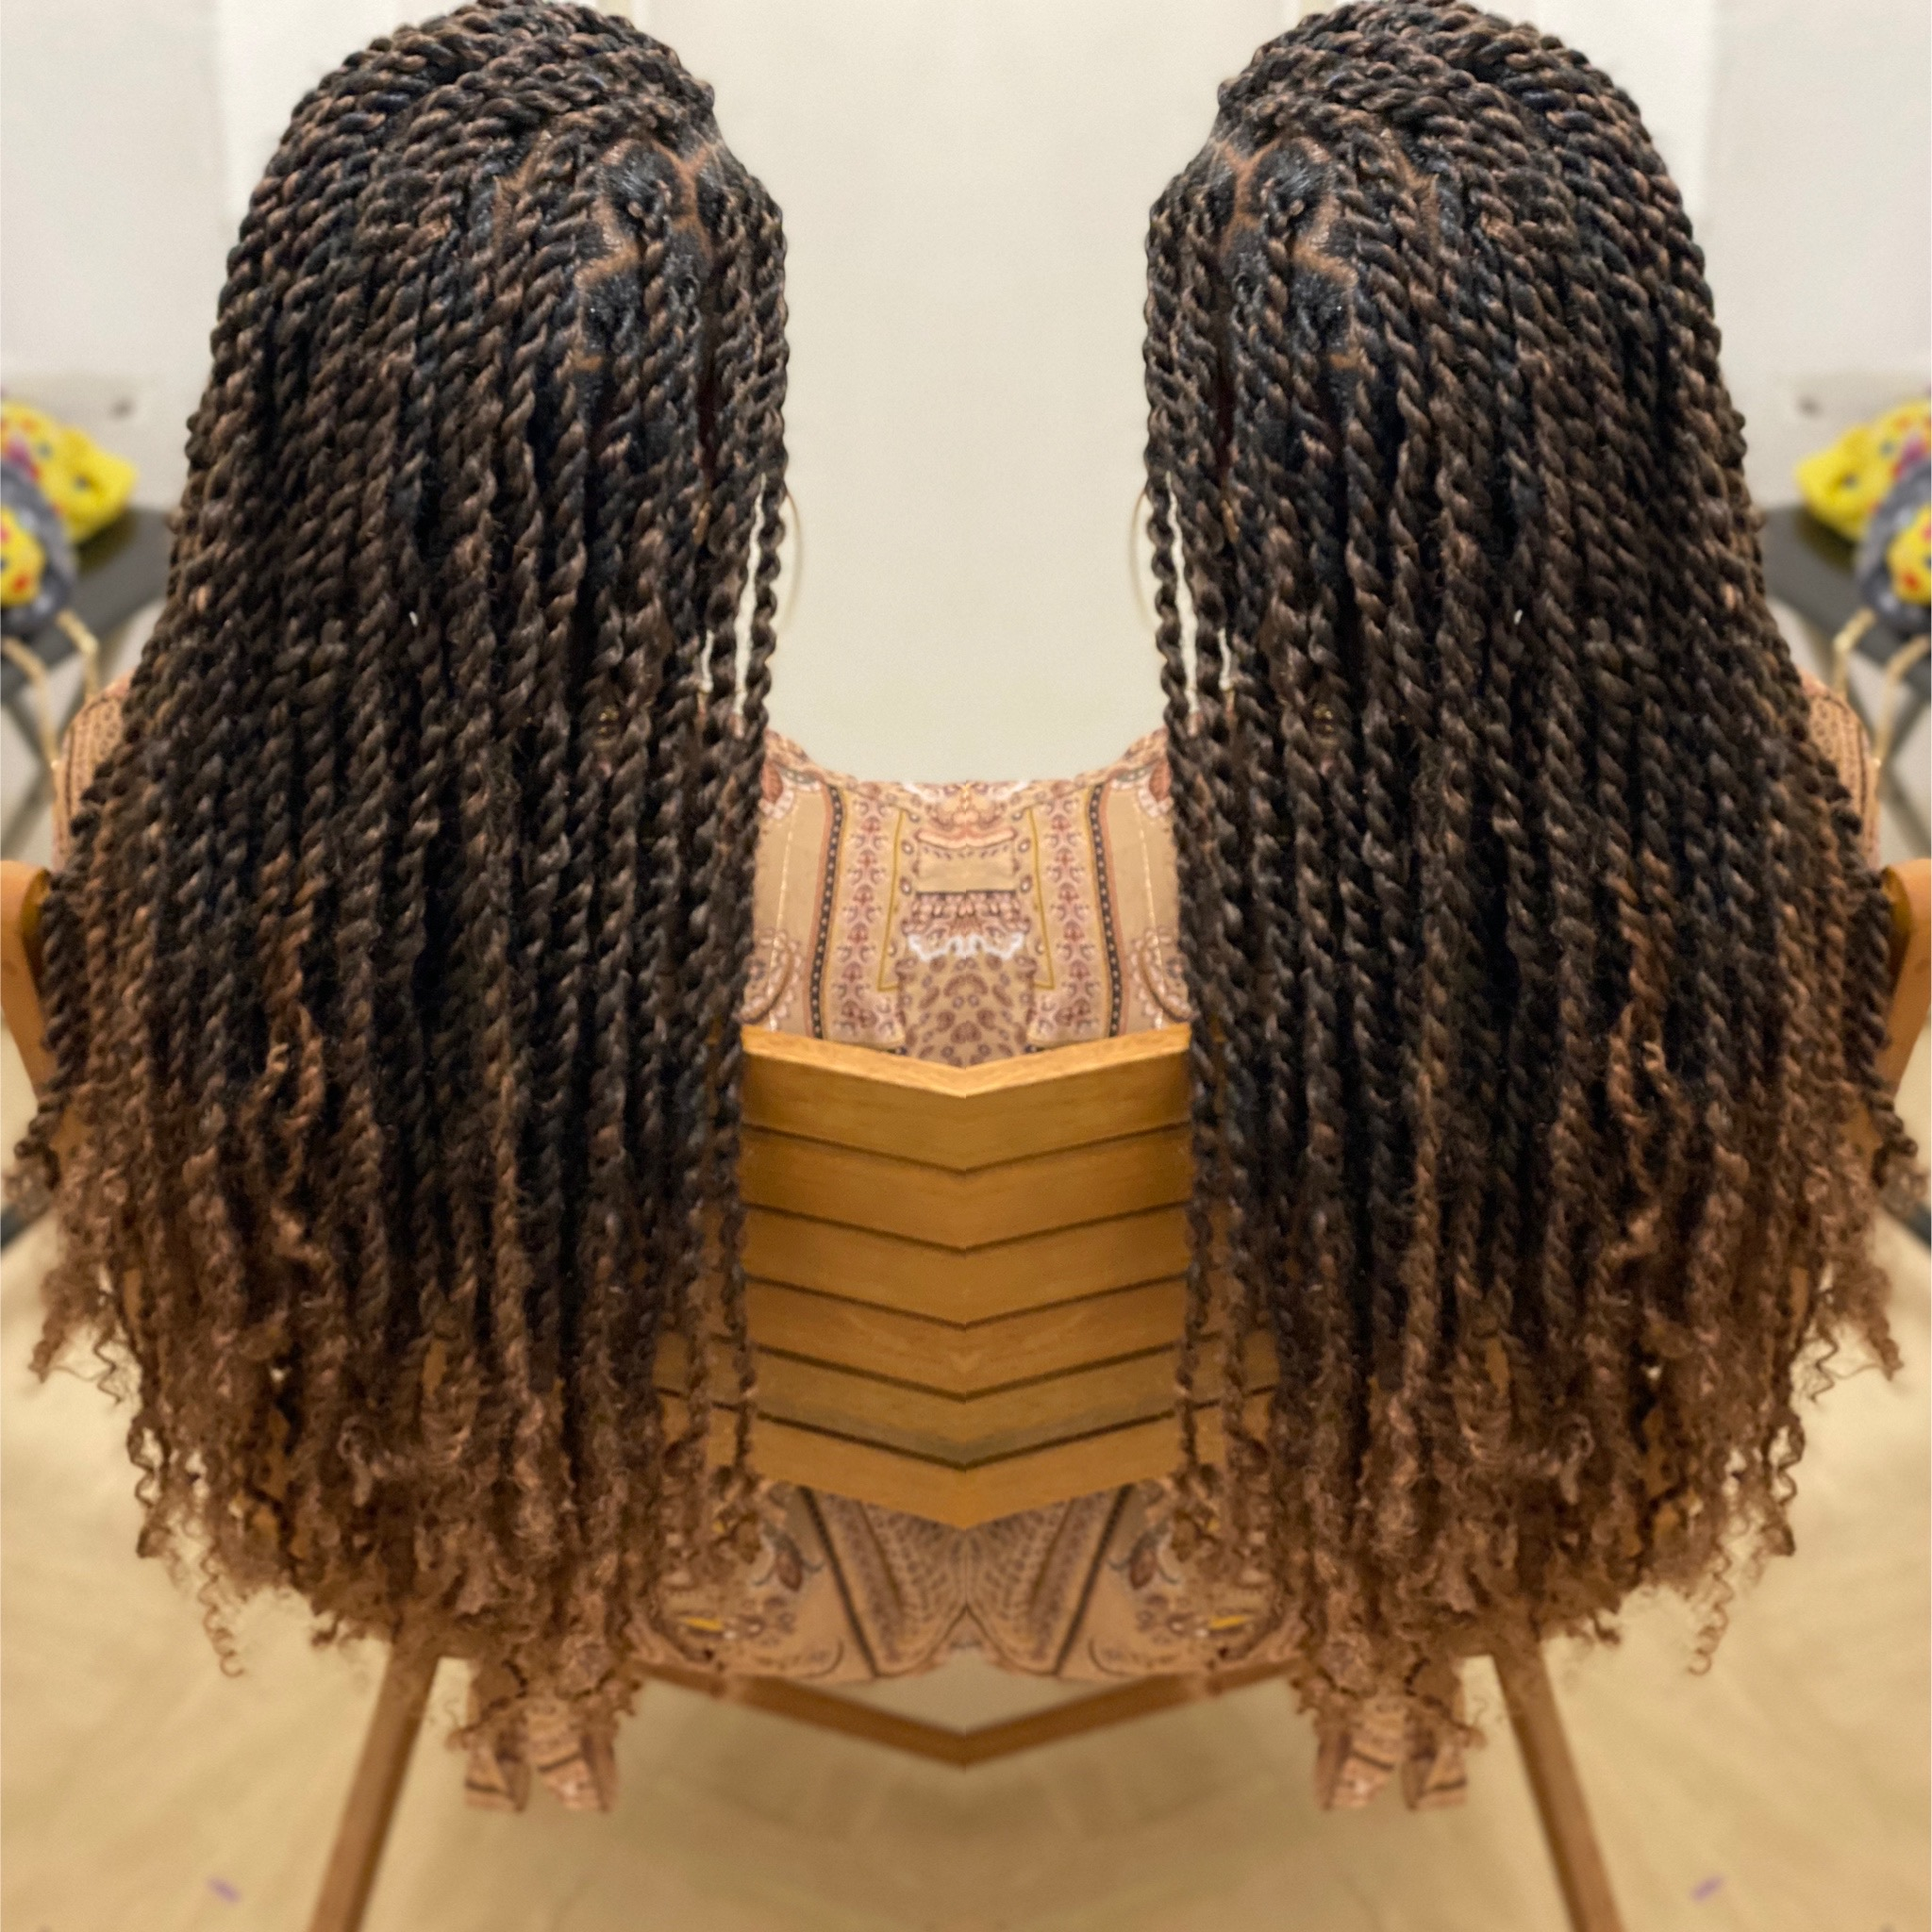 salon de coiffure afro tresse tresses box braids crochet braids vanilles tissages paris 75 77 78 91 92 93 94 95 AWXKNXPA